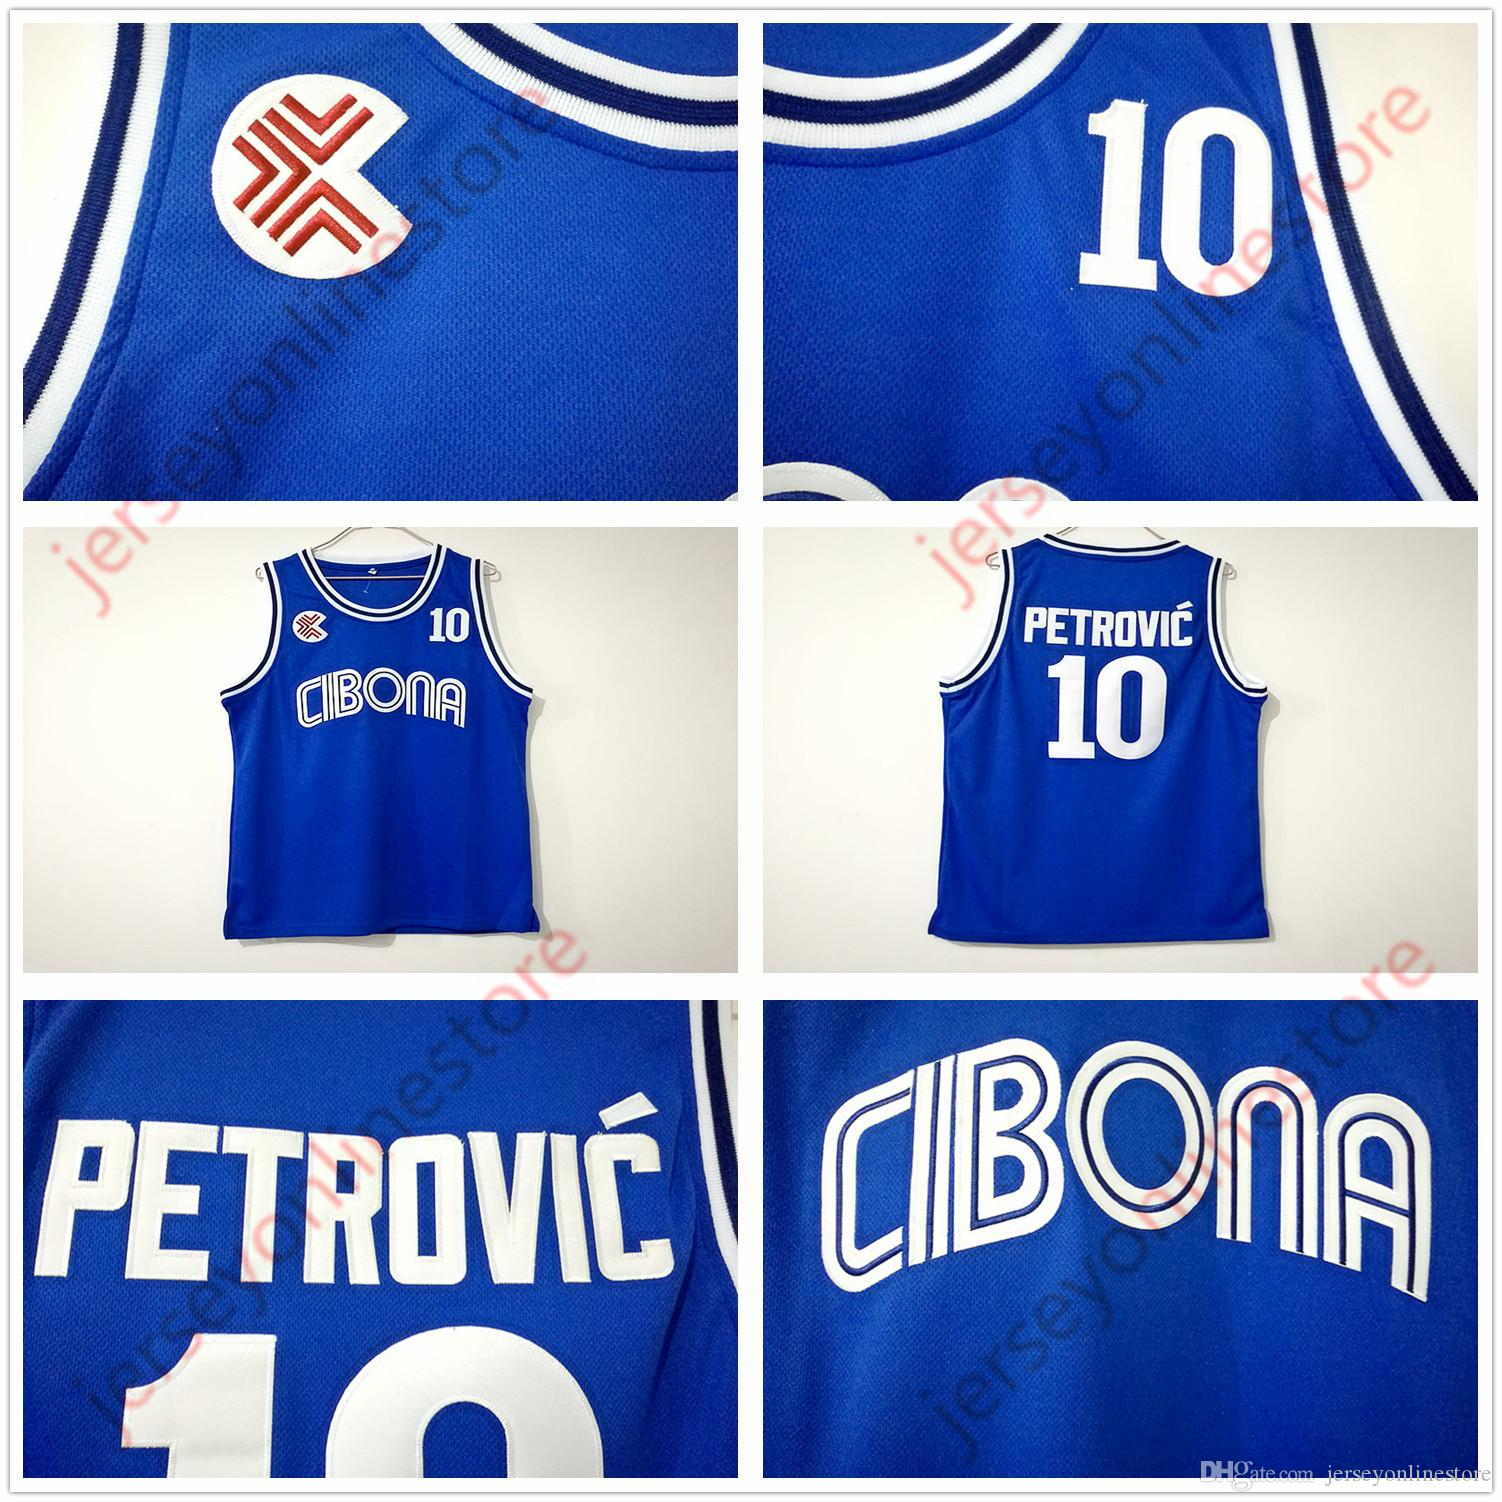 c98ba65e193 2019 Cheap Mens BC Cibona  10 Drazen Petrovic Jersey Wholesale Blue Drazen  Petrovic College Basketball Jerseys Stitched From Jerseyonlinestore